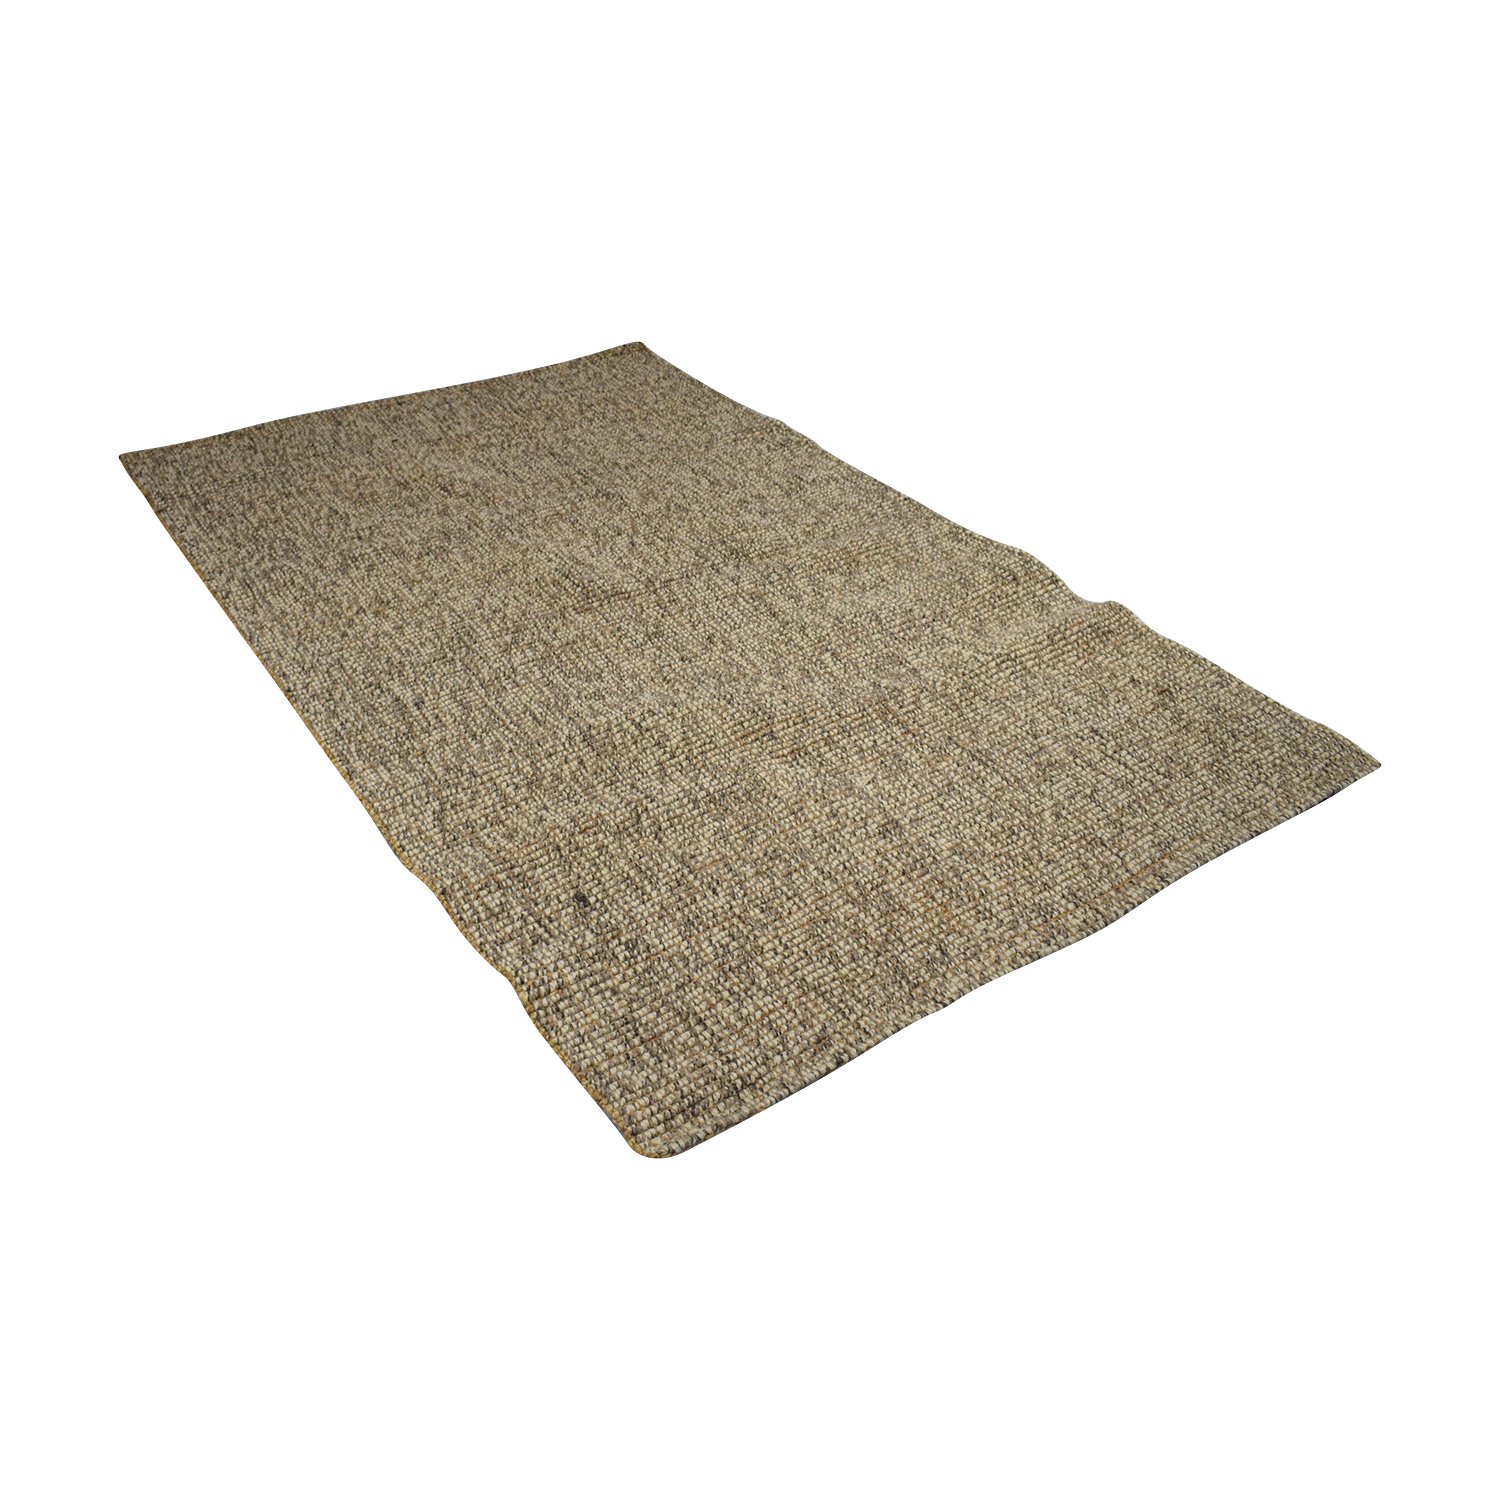 Crate & Barrel Crate & Barrel Grey Popcorn Rug Grey